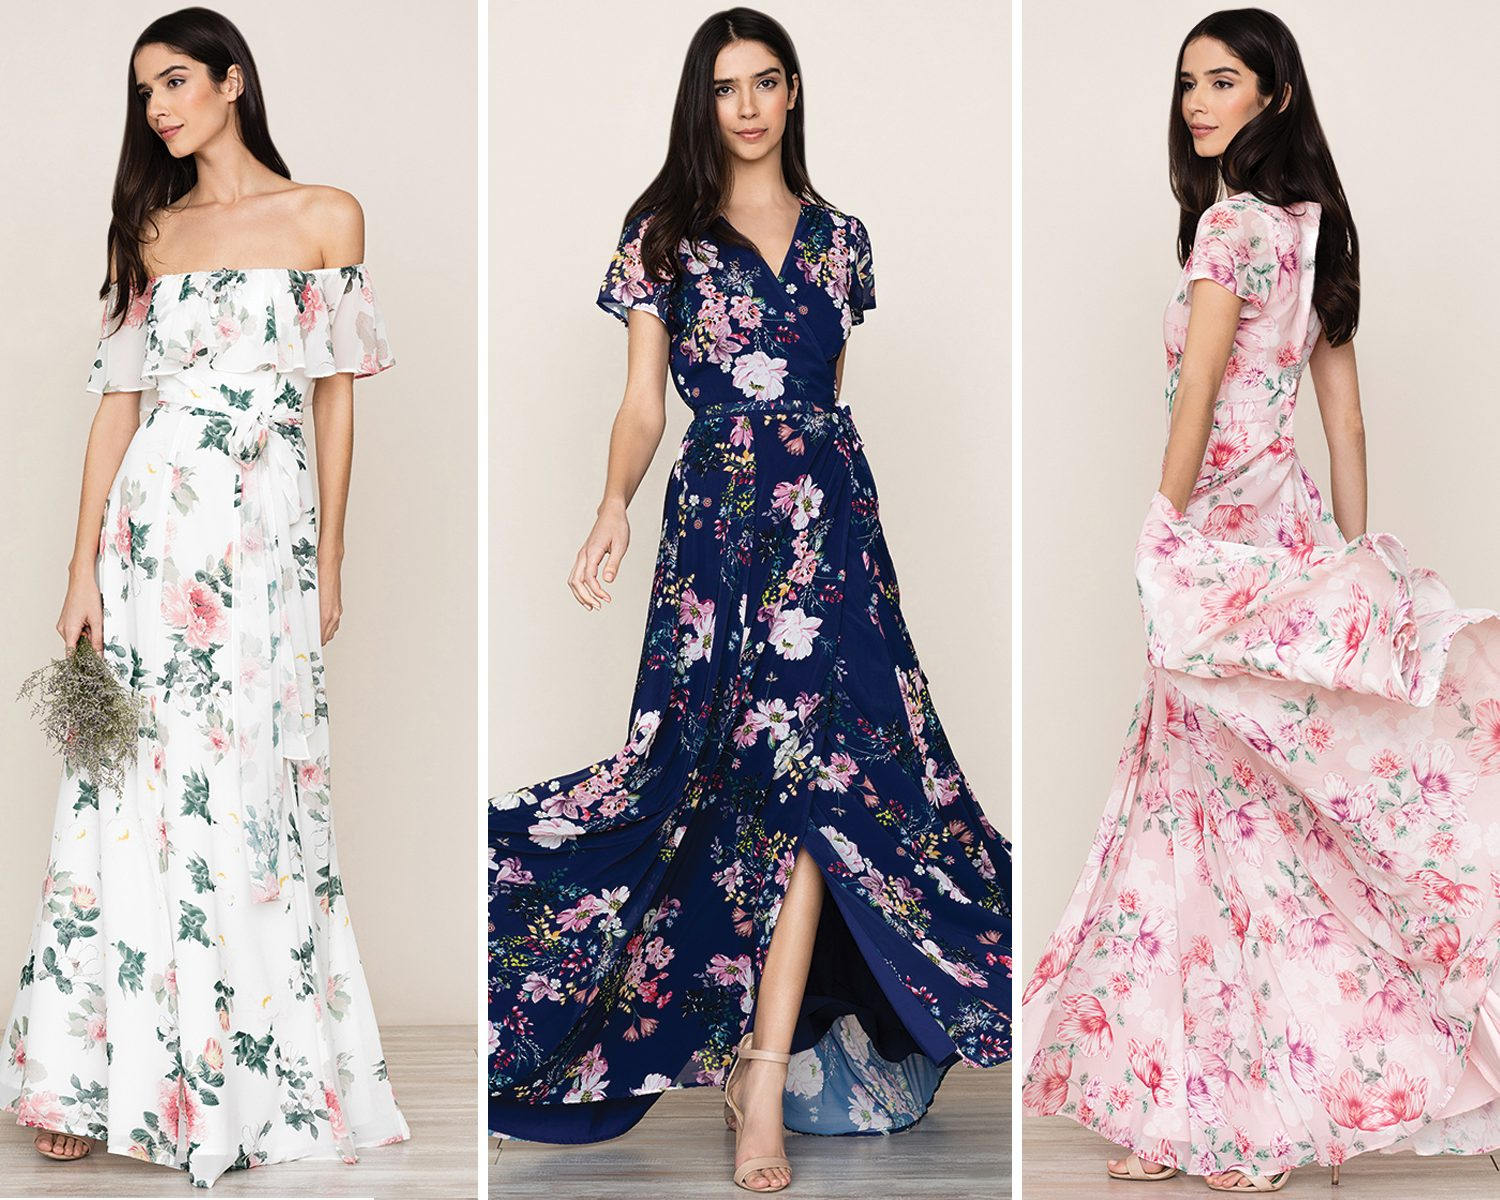 Yumi Kim\'s Bridesmaid Dresses Can Be Recycled for Future Vacations